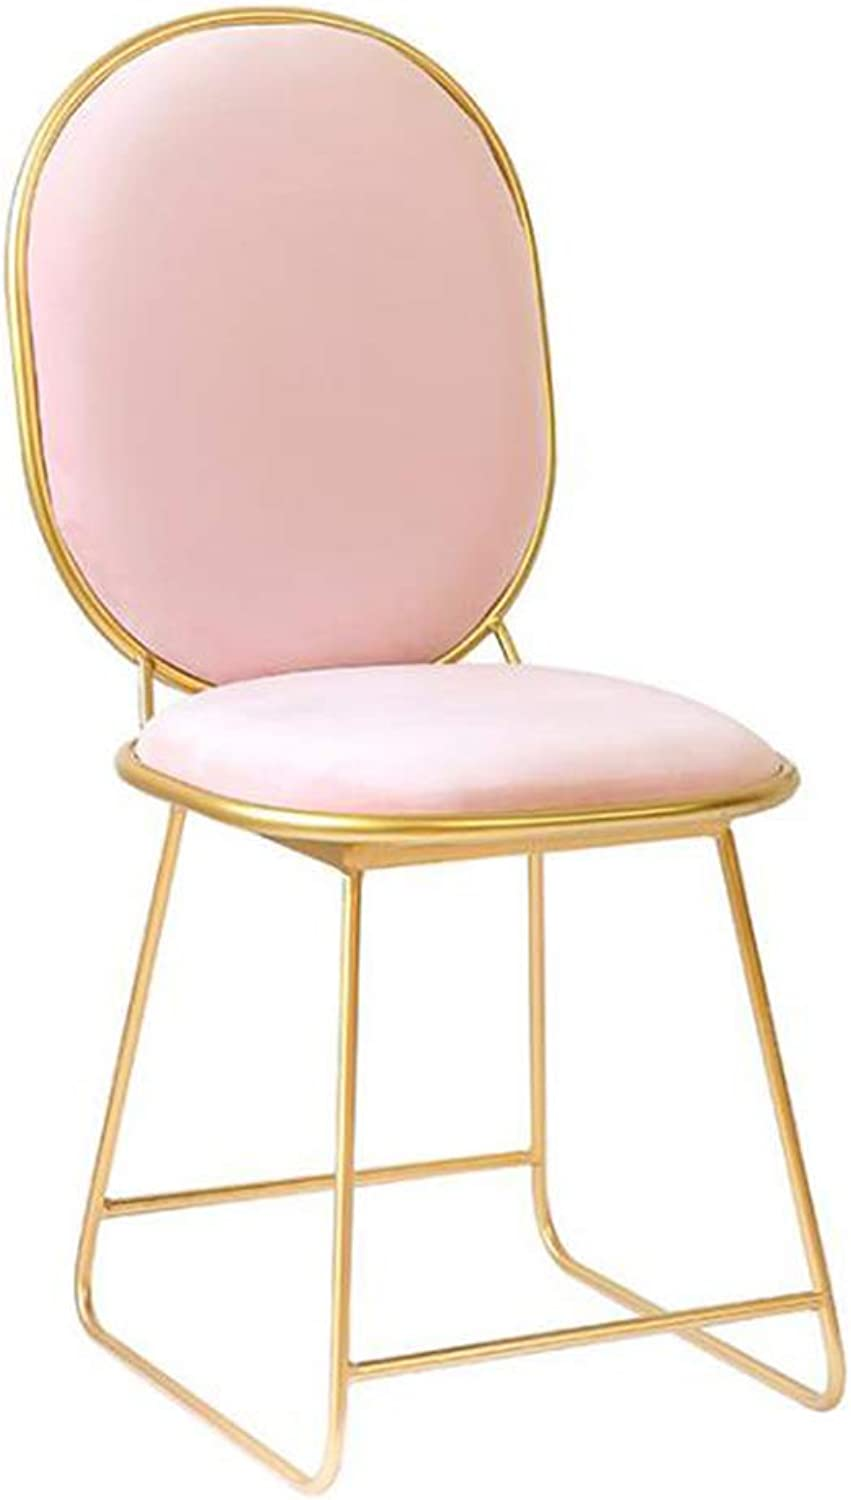 Makeup Chair Nordic Restaurant Chair Iron Dining Chair Net Red Hotel golden Chair Creative Chair Bedroom Living Room Metal Dressing Chair,Pink,40  36  88CM